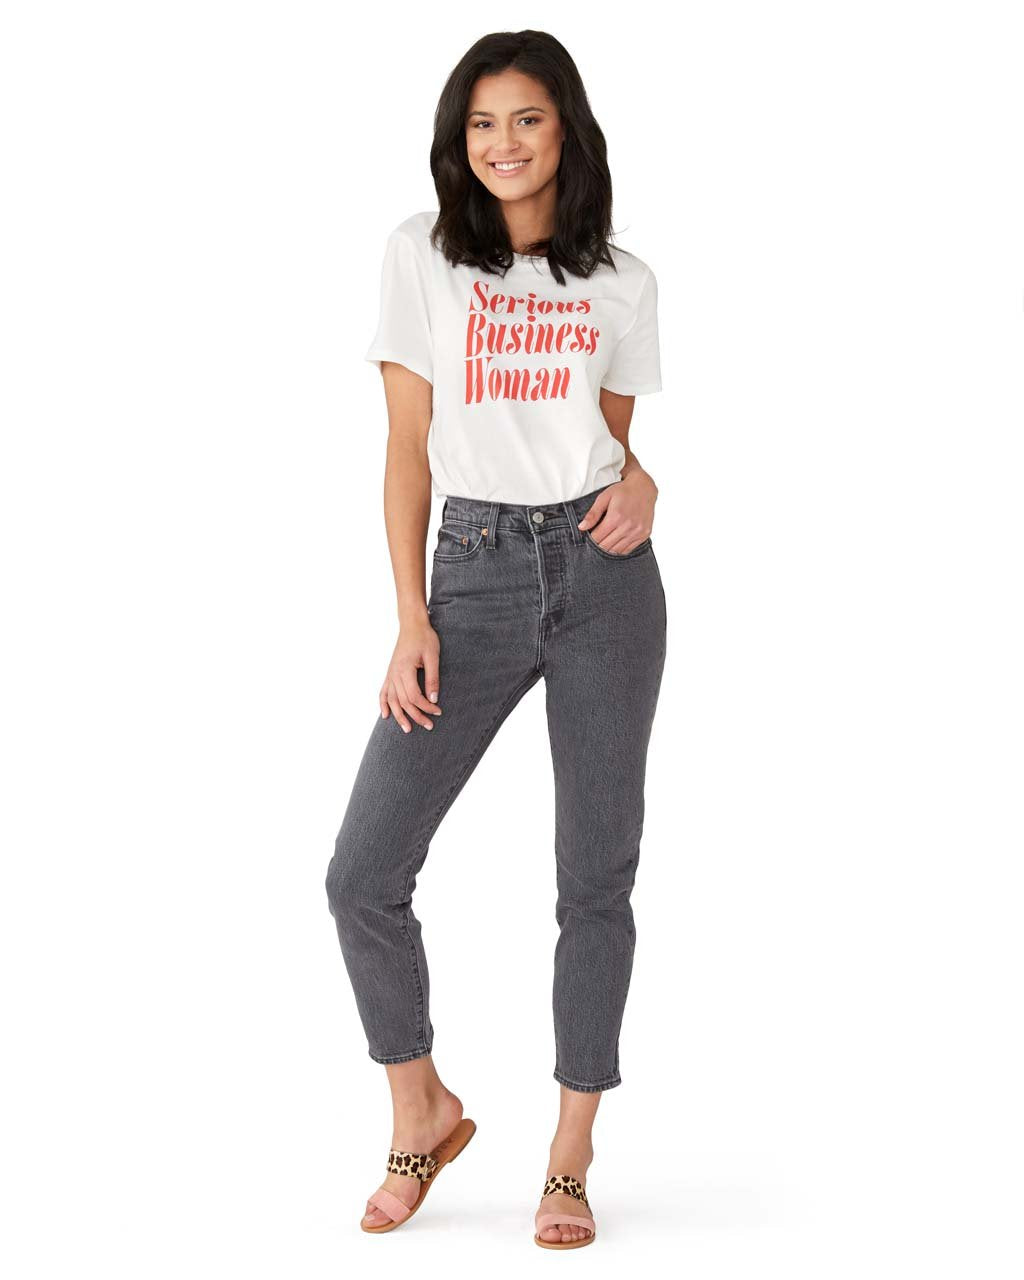 Serious Woman Ivory Serious Tee Business KJc1lF